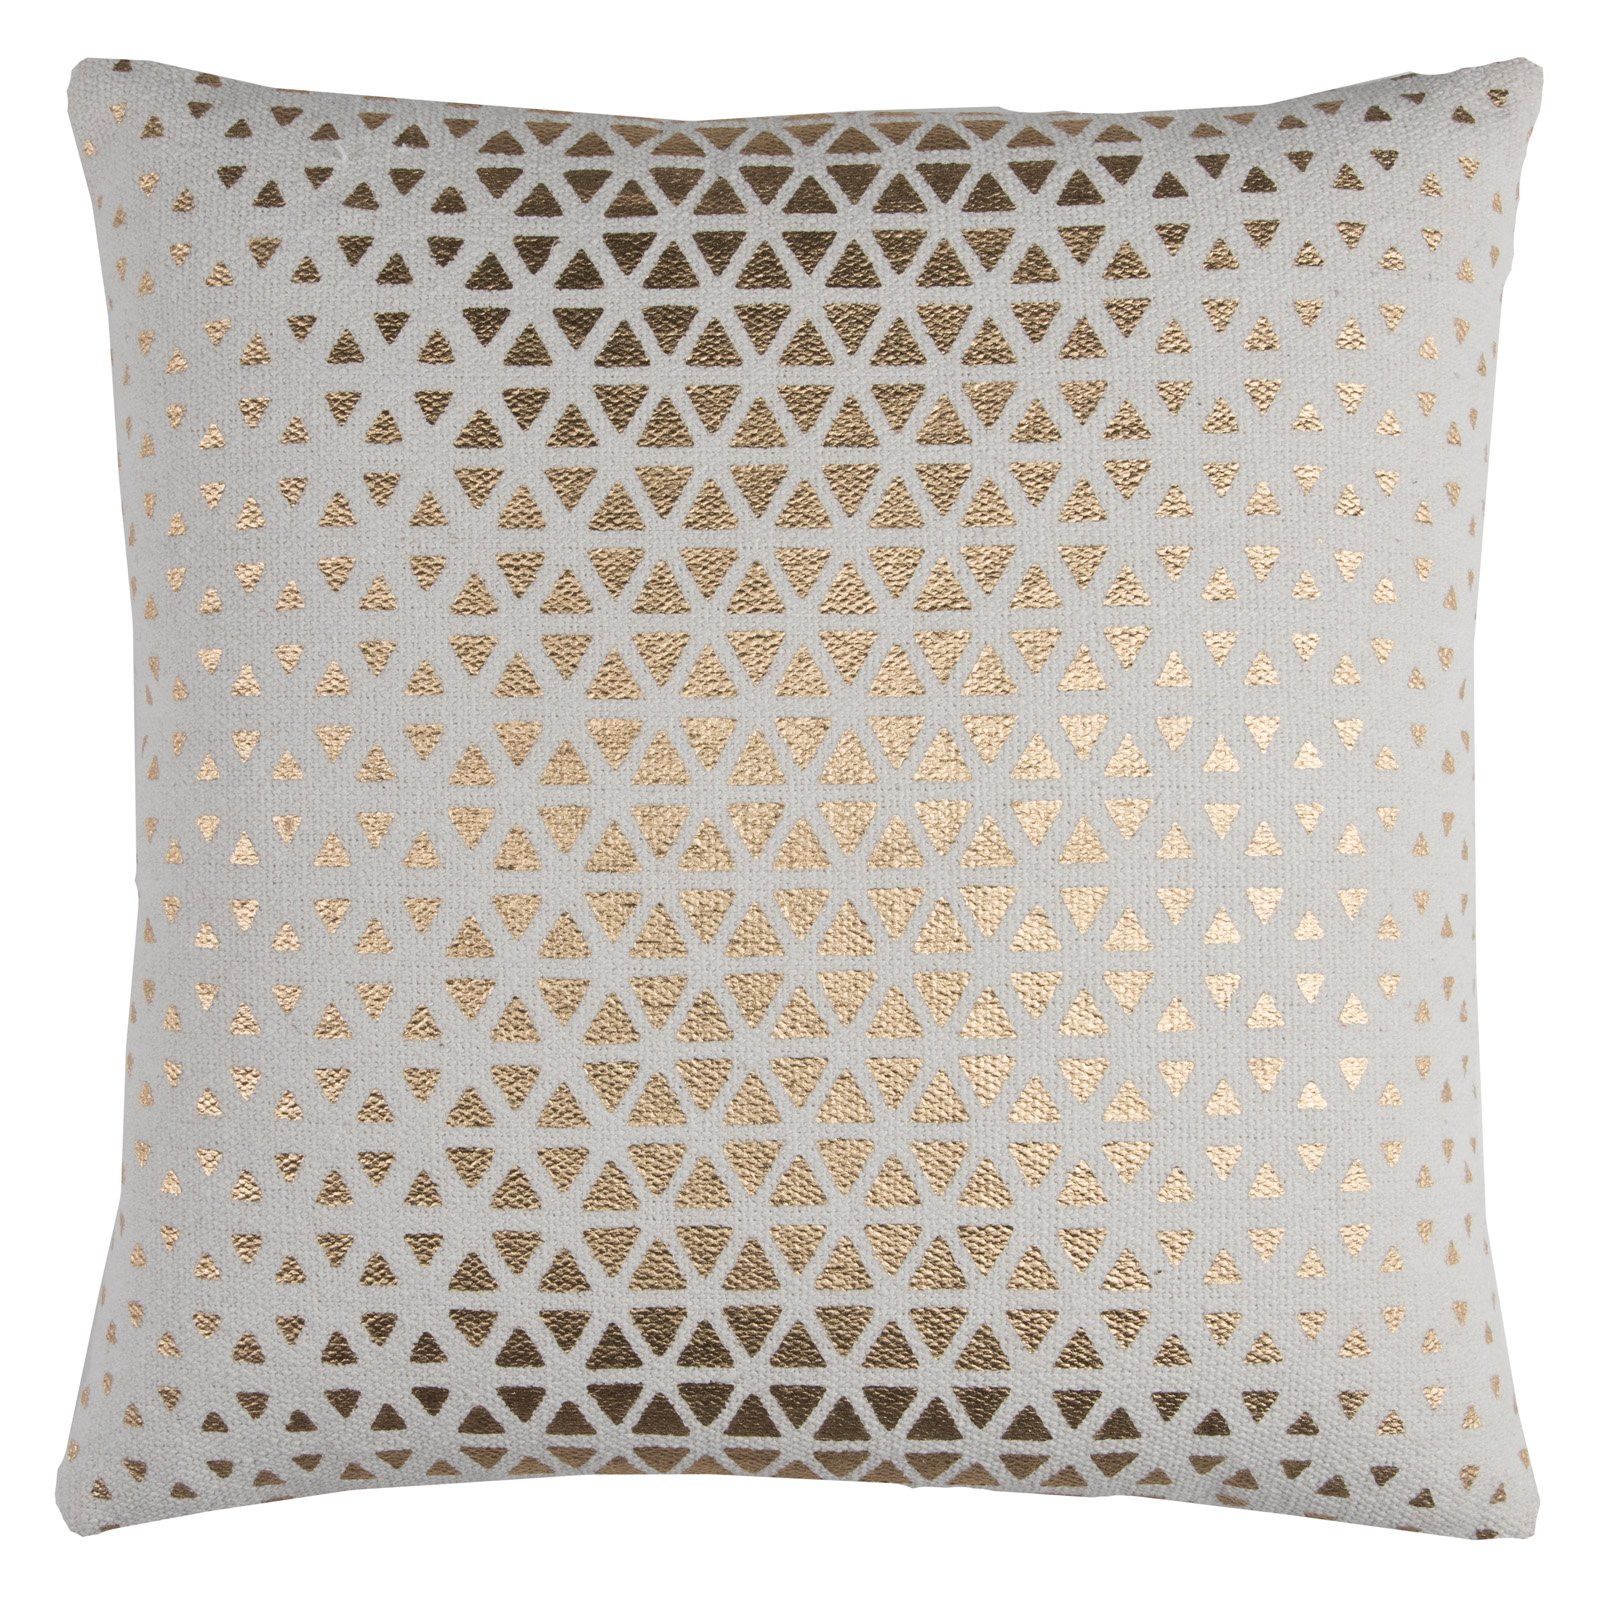 "Rizzy Home T11567 20"" x 20"" Throw Pillow with Zipper Closer"